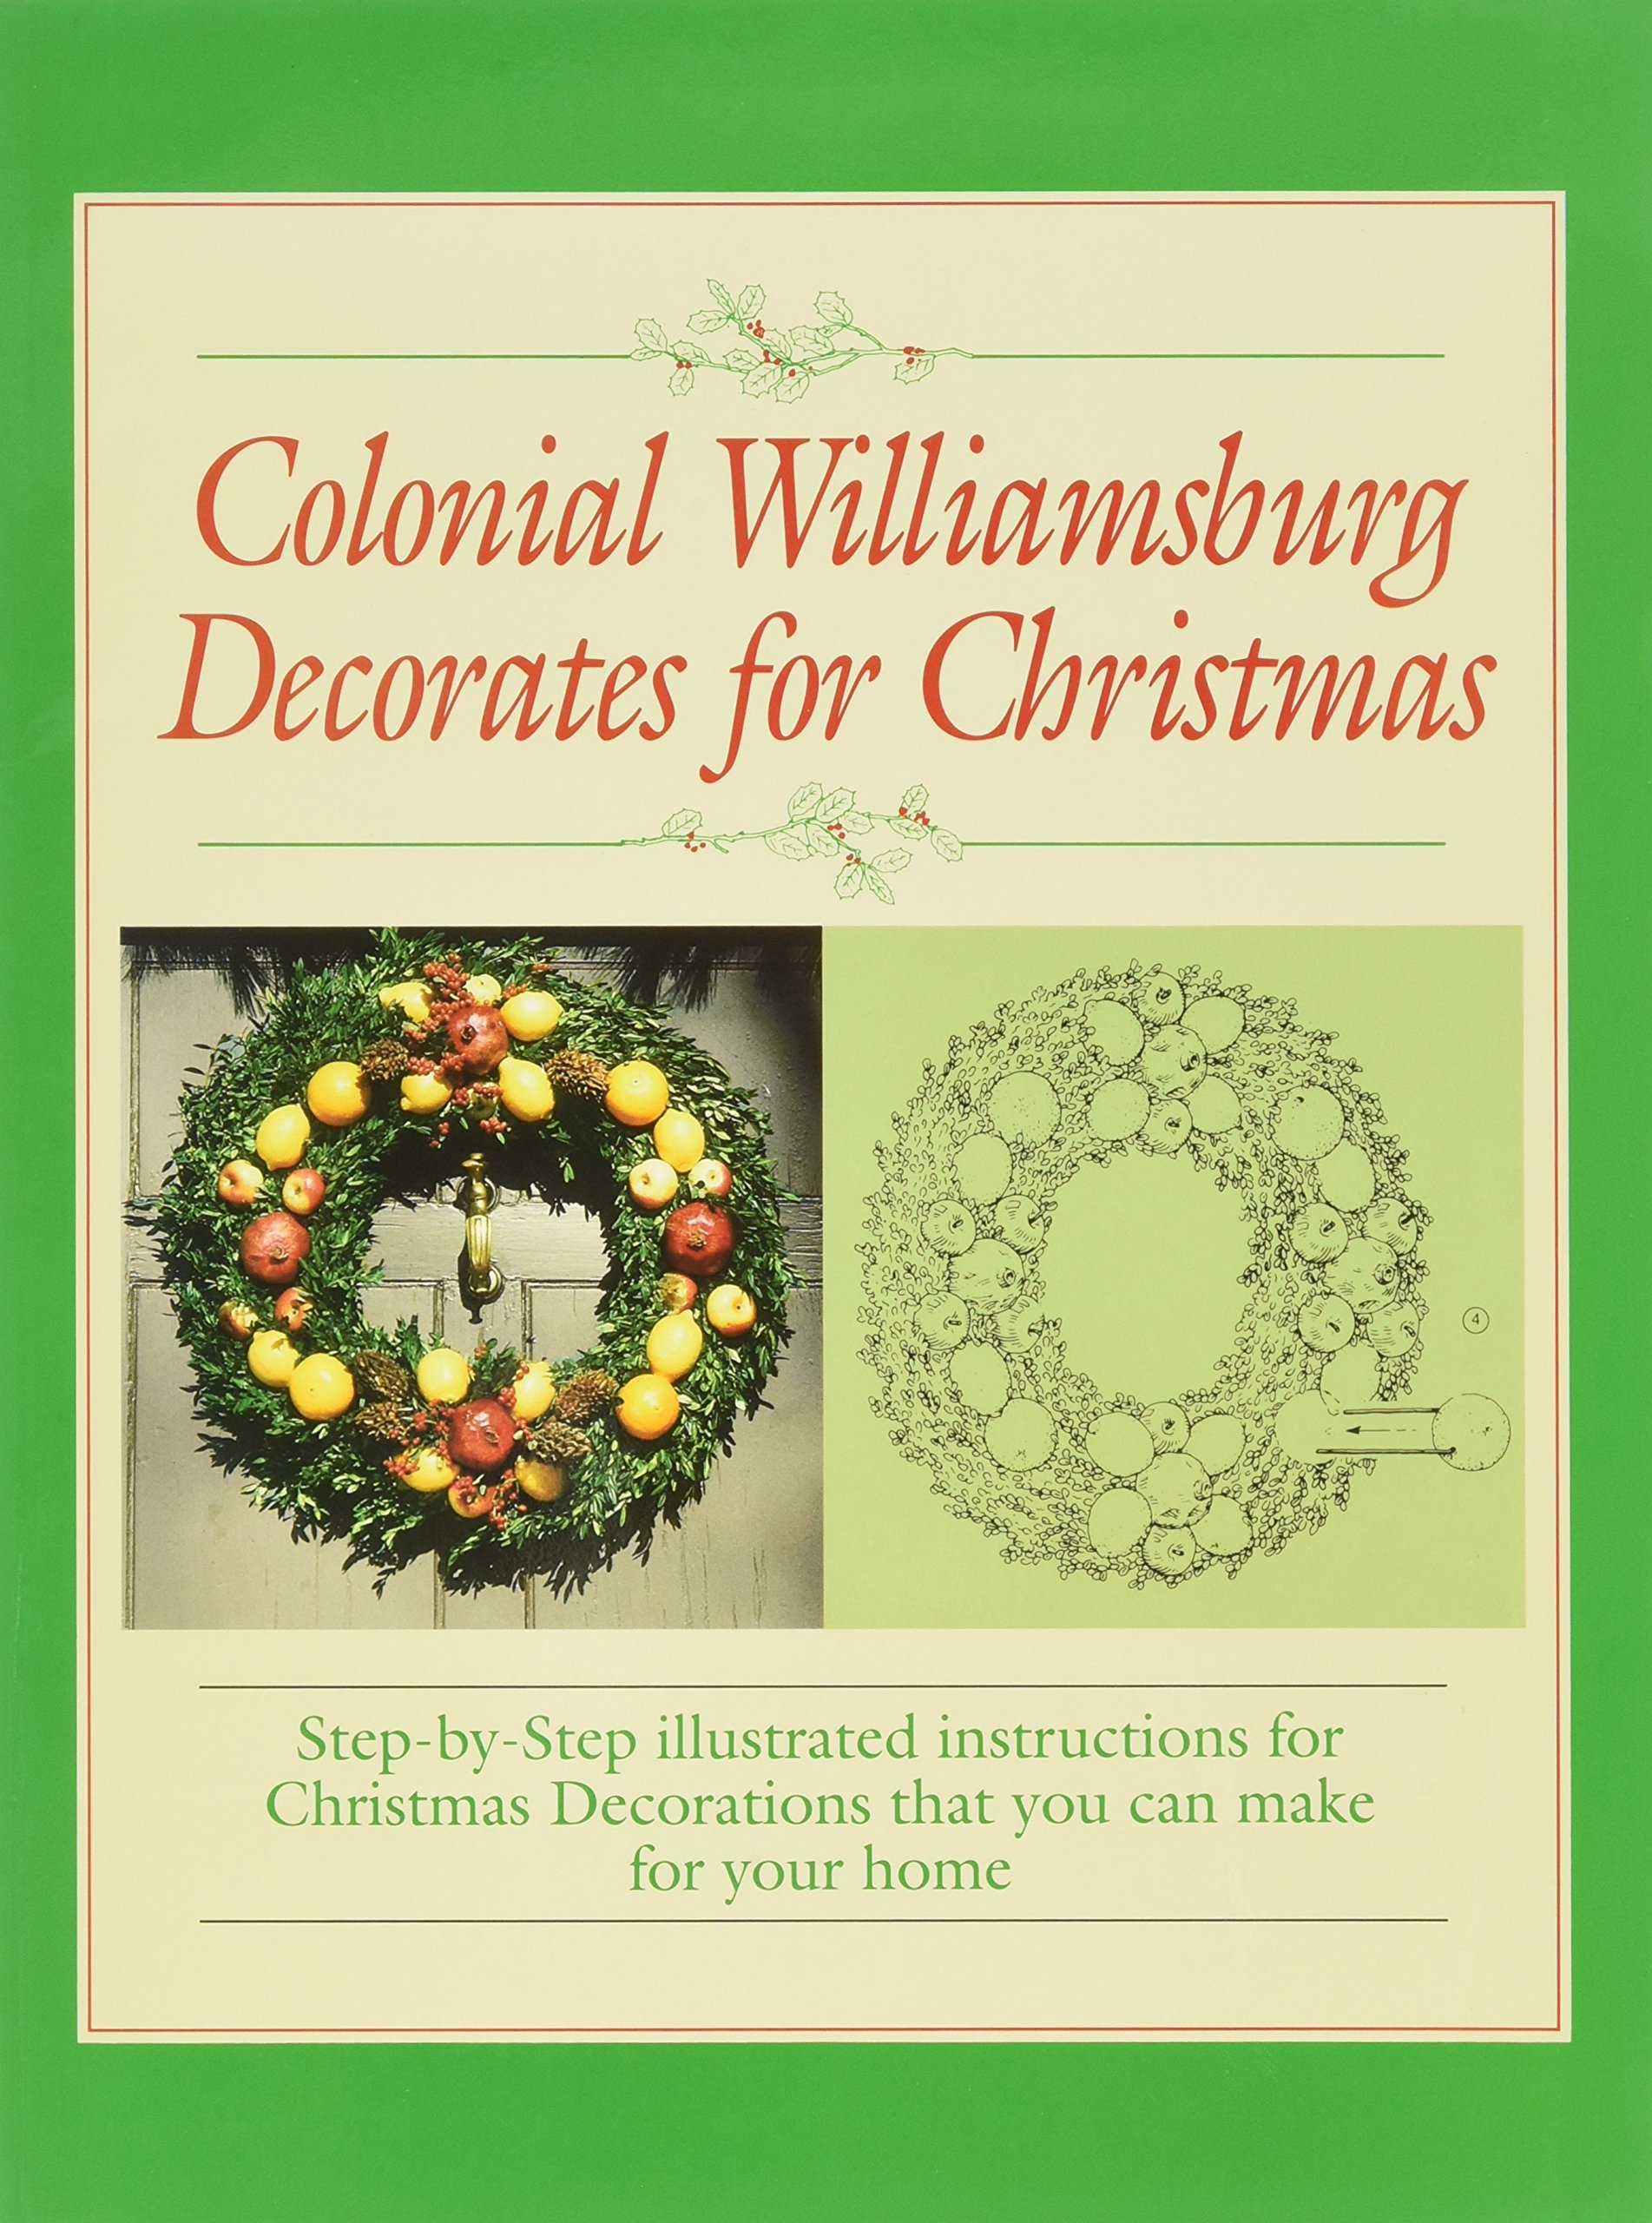 colonial williamsburg decorates for christmas step by step illustrated instructions for christmas decorations that you can make for your home libby h - Colonial Williamsburg Christmas Decorations